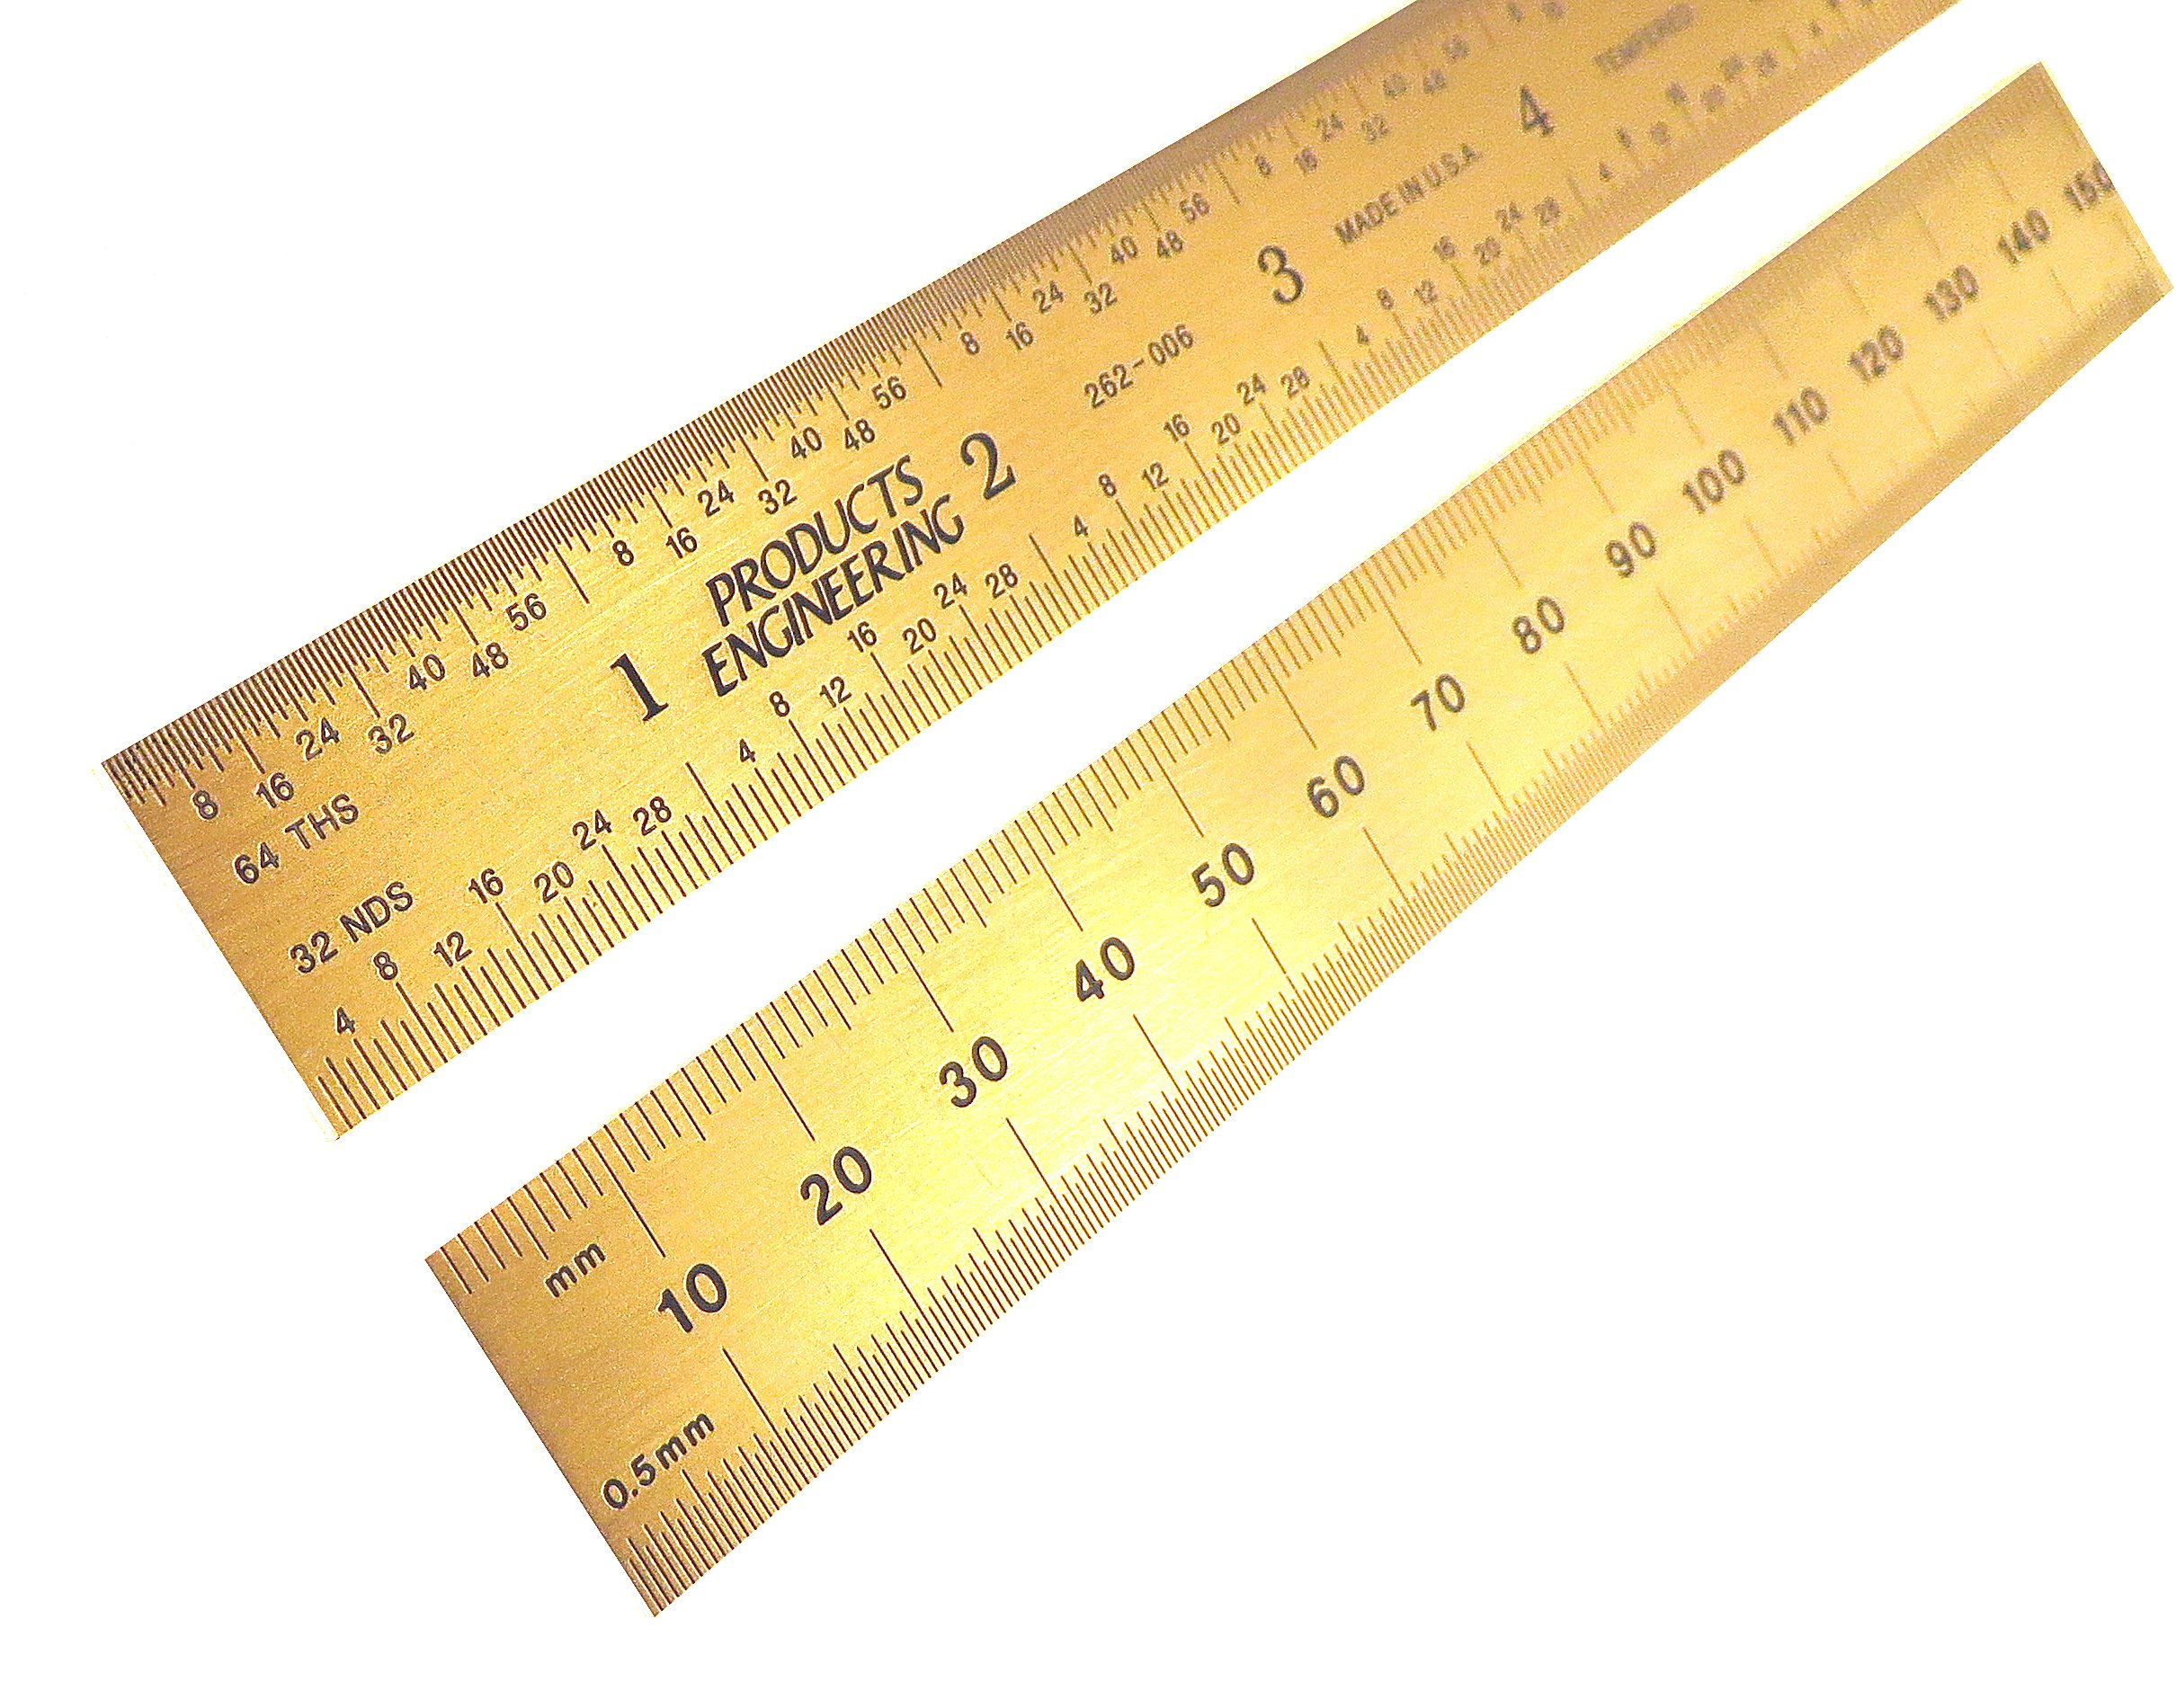 PEC Tools Rigid 6'' 150 mm English / Metric Titanium Nitride (TiN) Coated Extreme Scratch Resistant Ultra High Contrast Machinist Engineer Ruler Scale with Markings .5mm, mm, 1/32'' and 1/64'' 262-006TN by Products Engineering Corporation PEC Tools